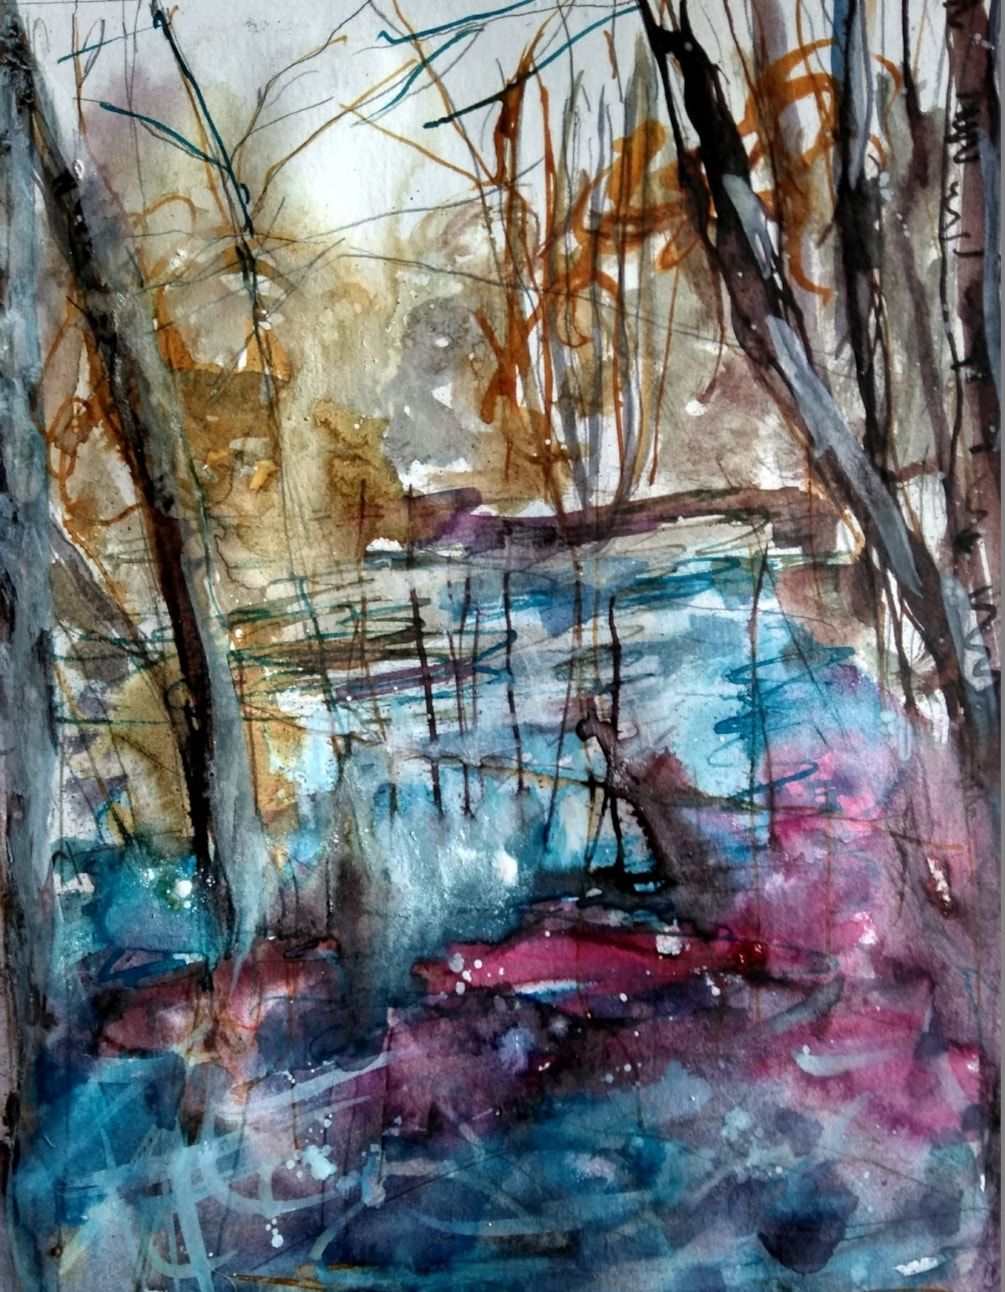 The pond in the woods.